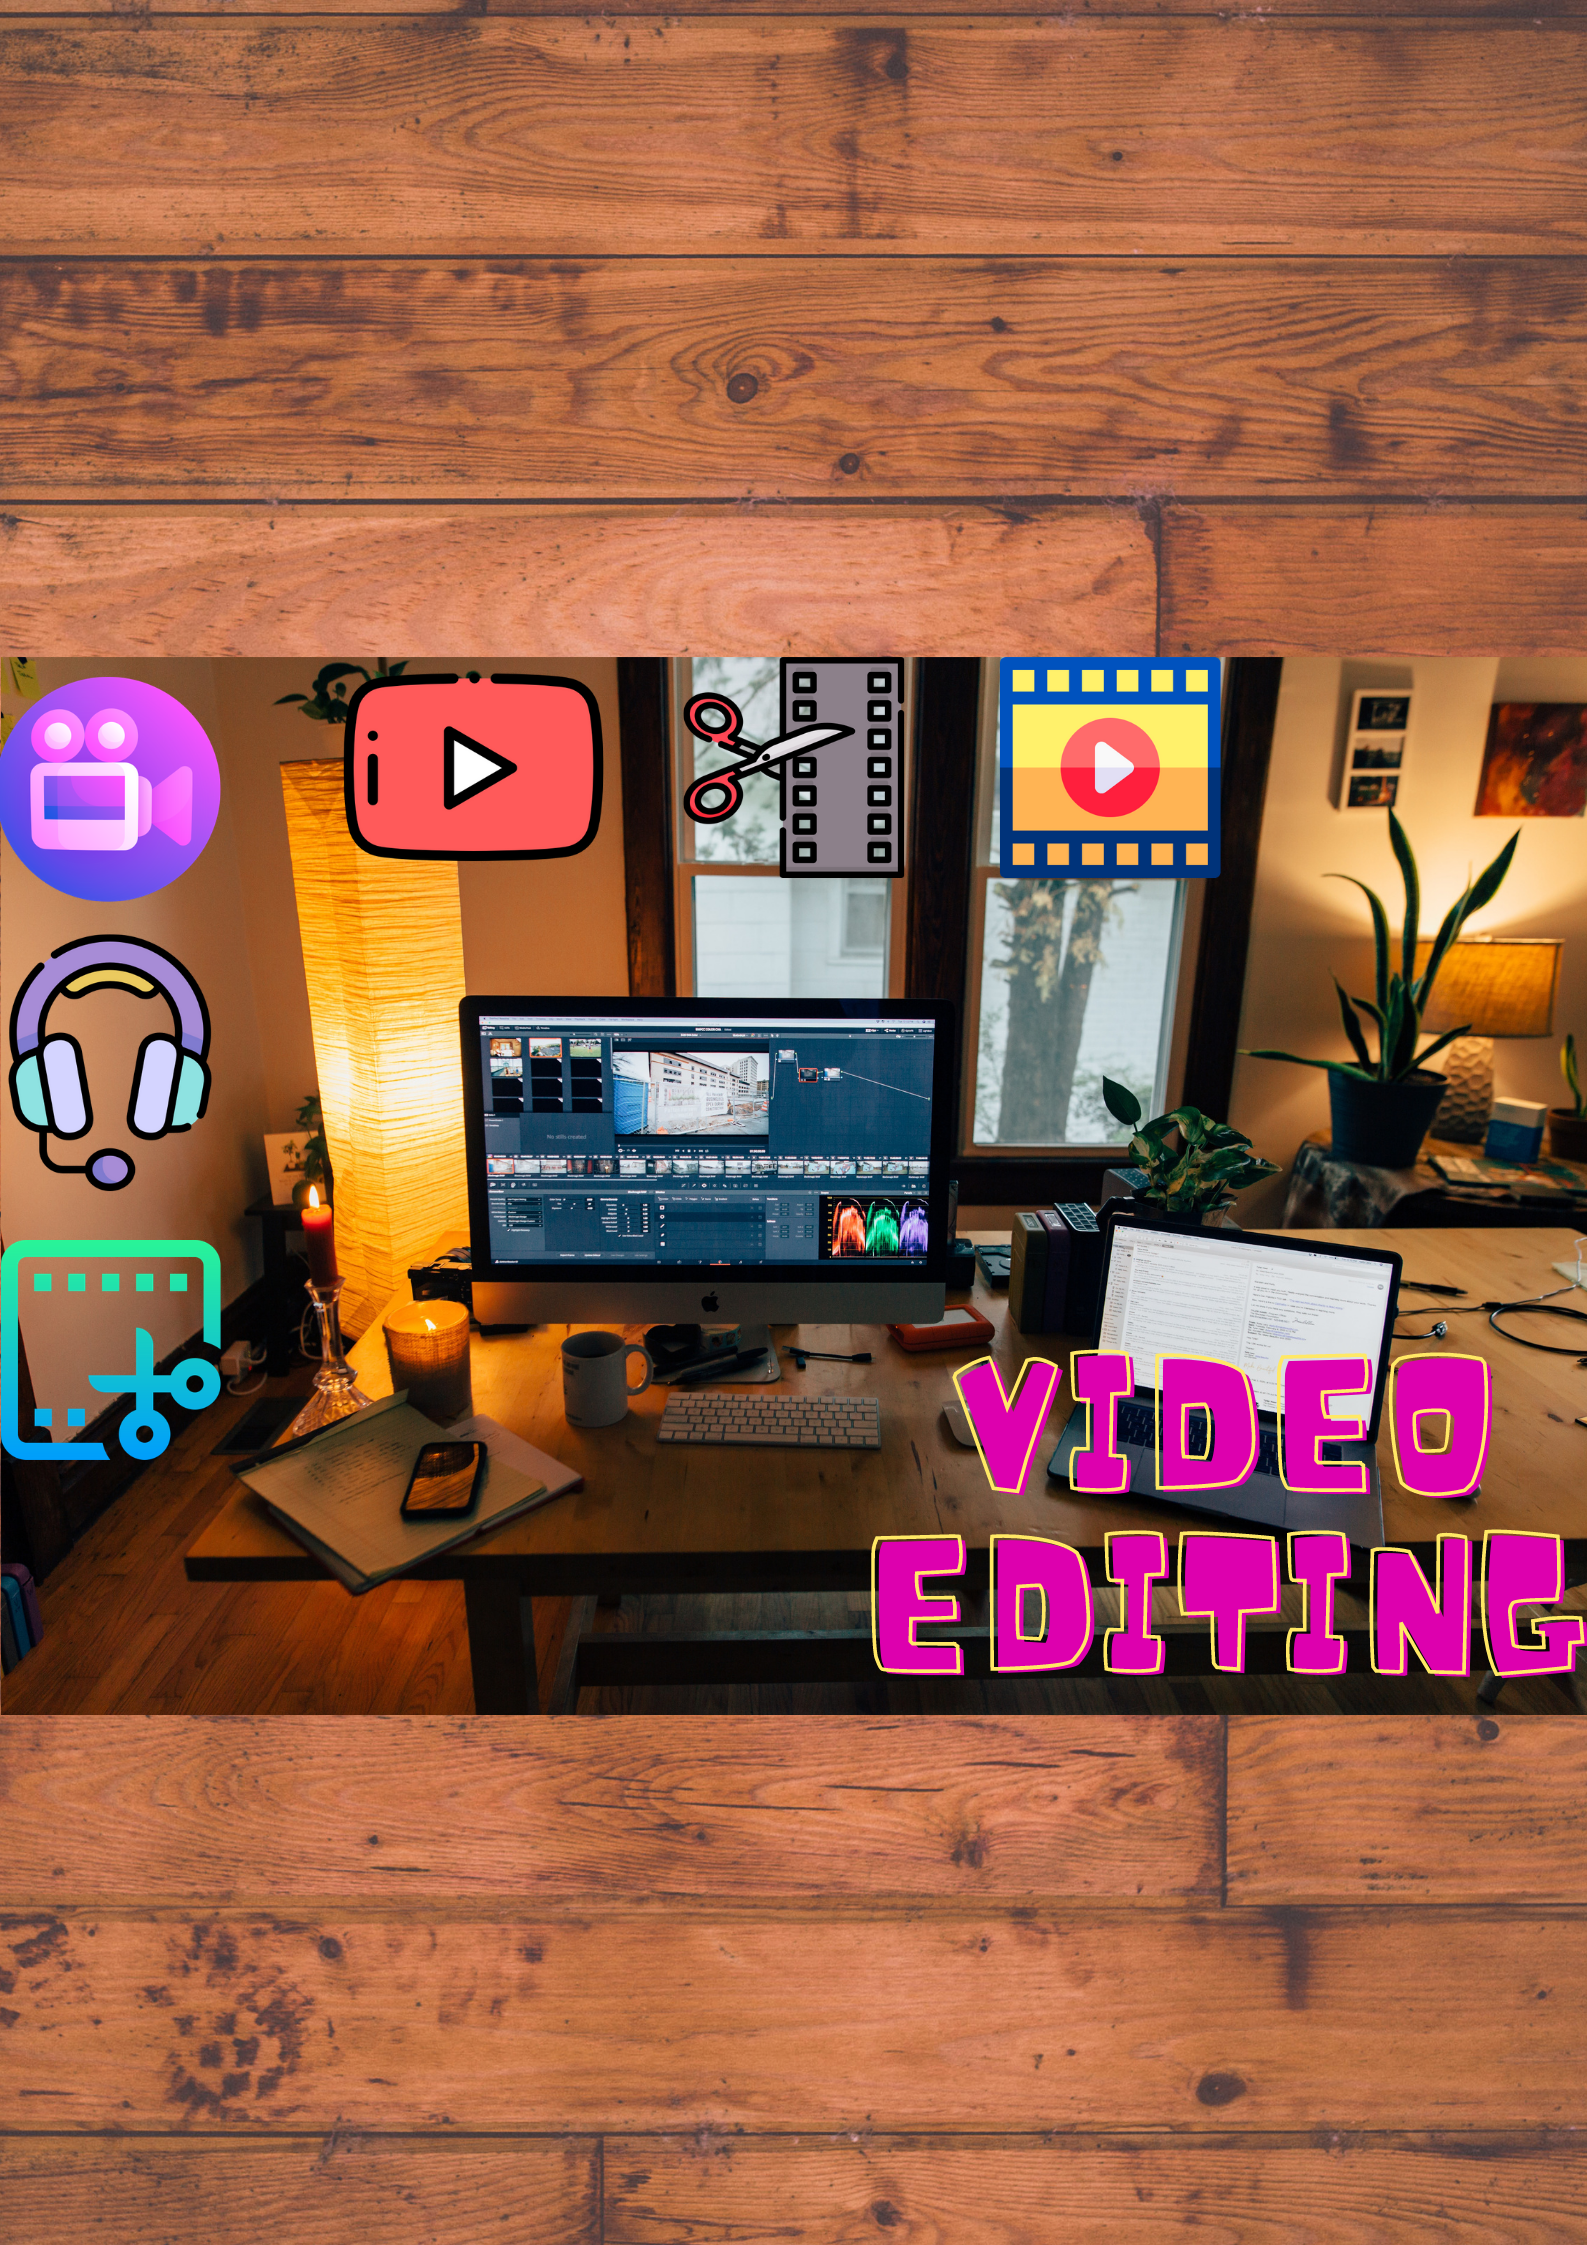 I Will Do Amazing And Mind-Blowing Video Editing